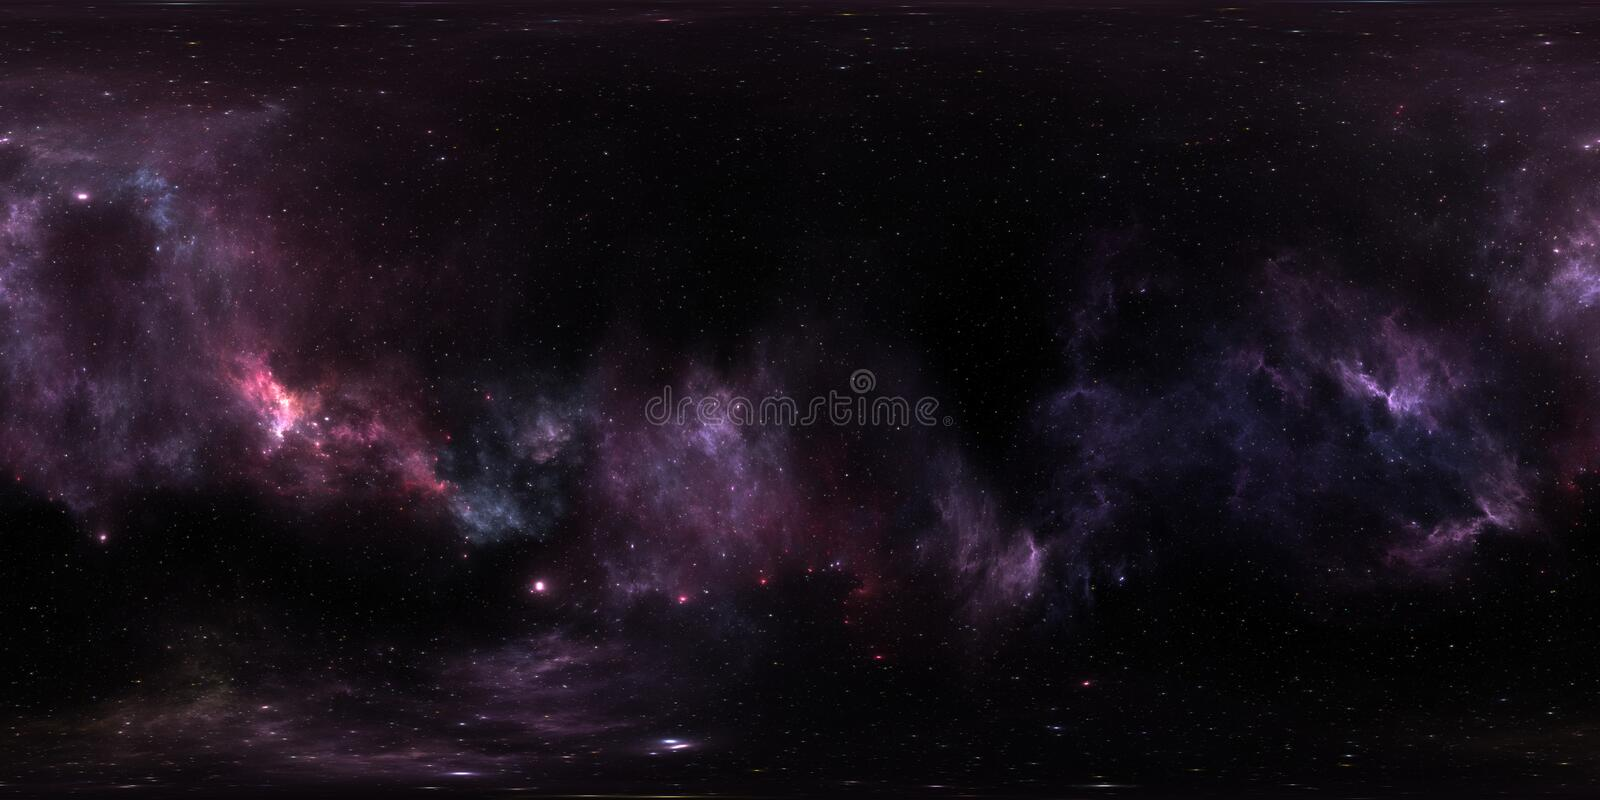 Space background with purple nebula and stars. Panorama, environment 360 HDRI map. Equirectangular projection, spherical panorama royalty free illustration